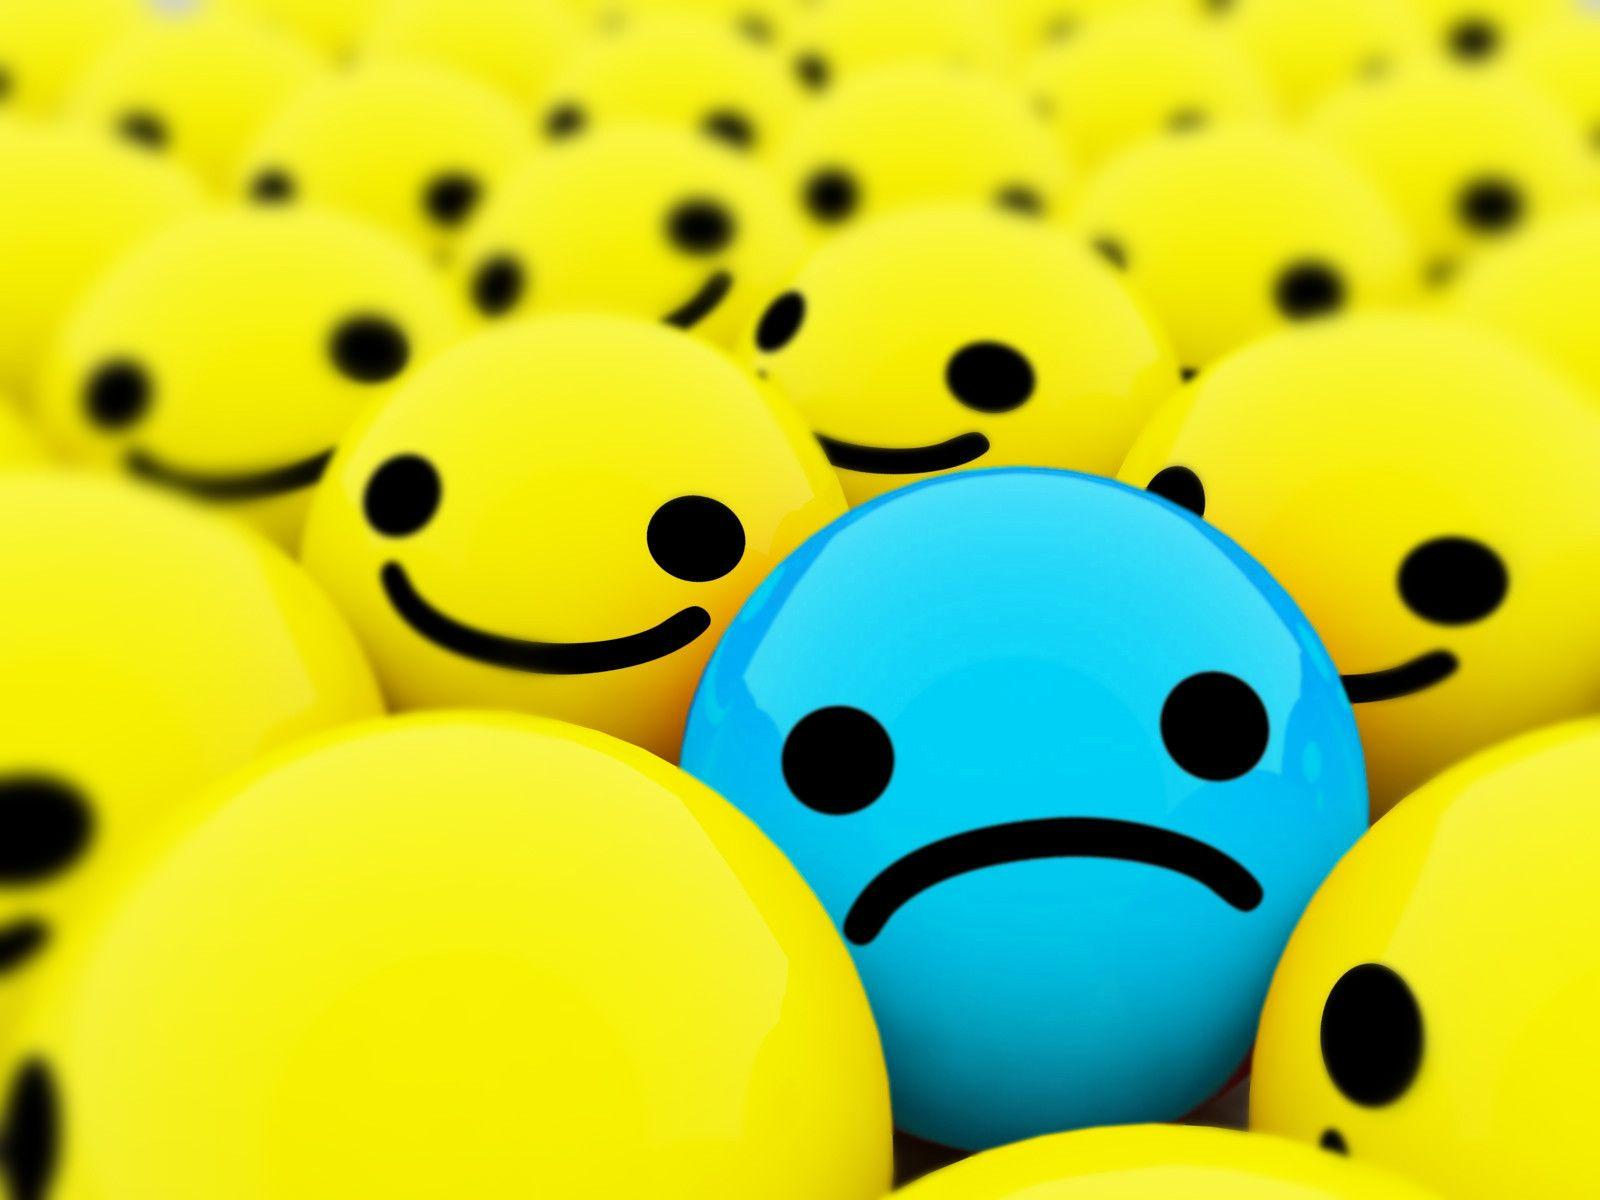 Sad face wallpapers wallpaper cave wallpapers smiley face desktop 1600x1200px wallpaper smiley face altavistaventures Image collections